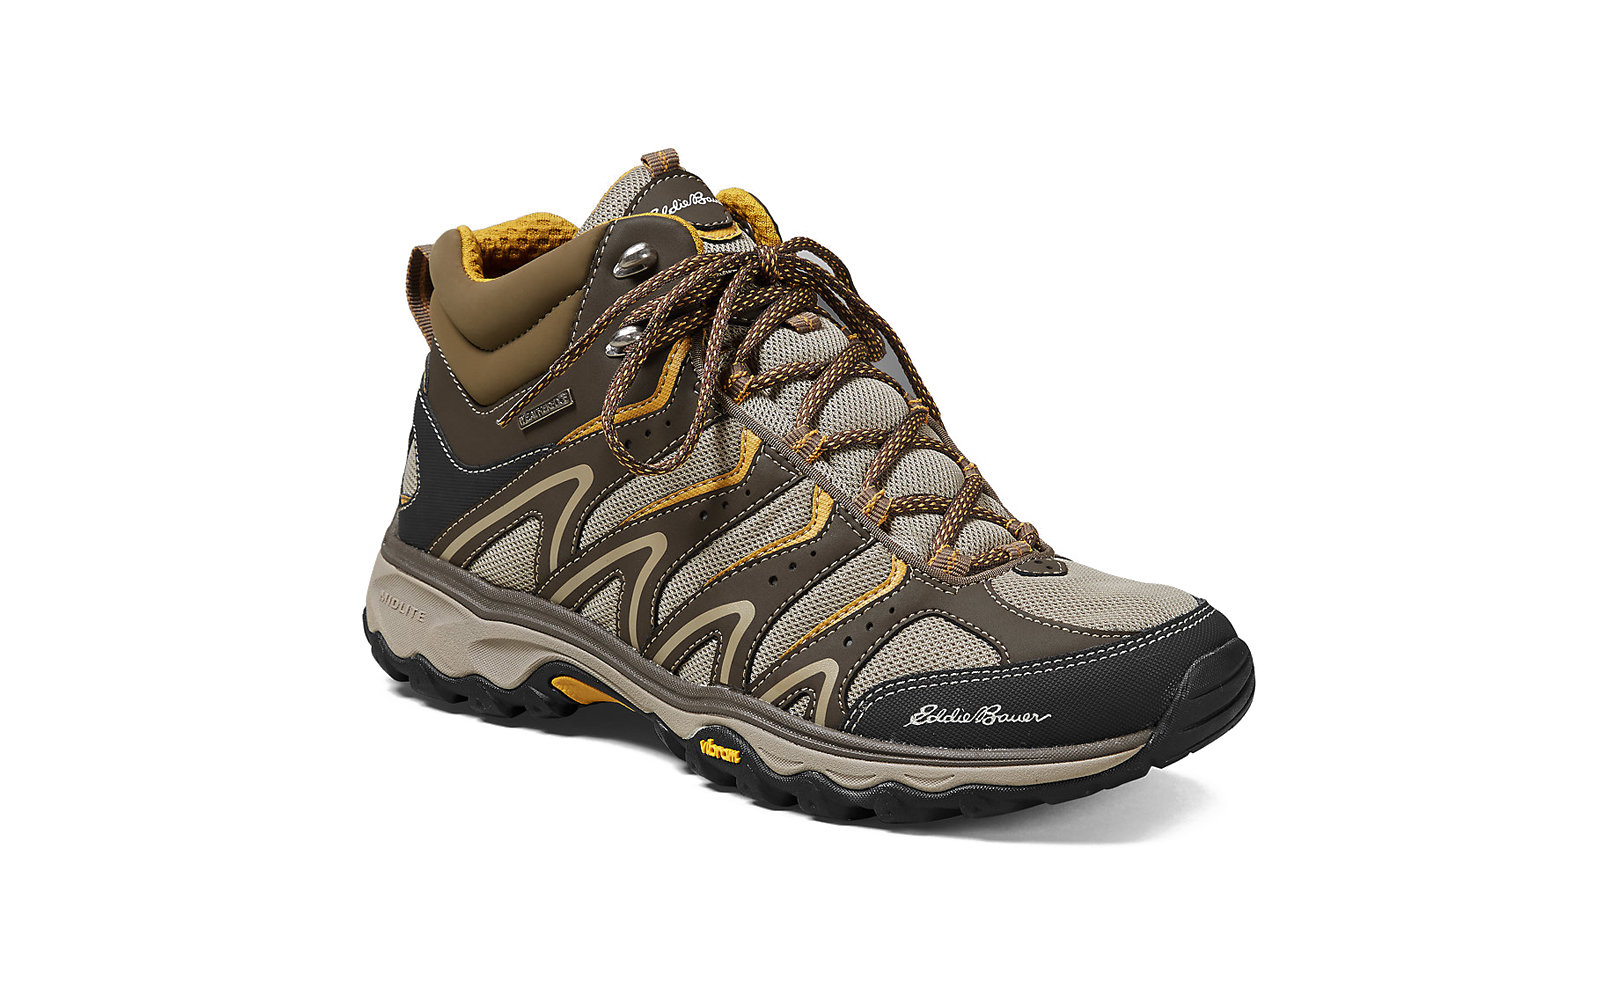 53990845f81 The Best Hiking Shoes and Boots for Men | Travel + Leisure